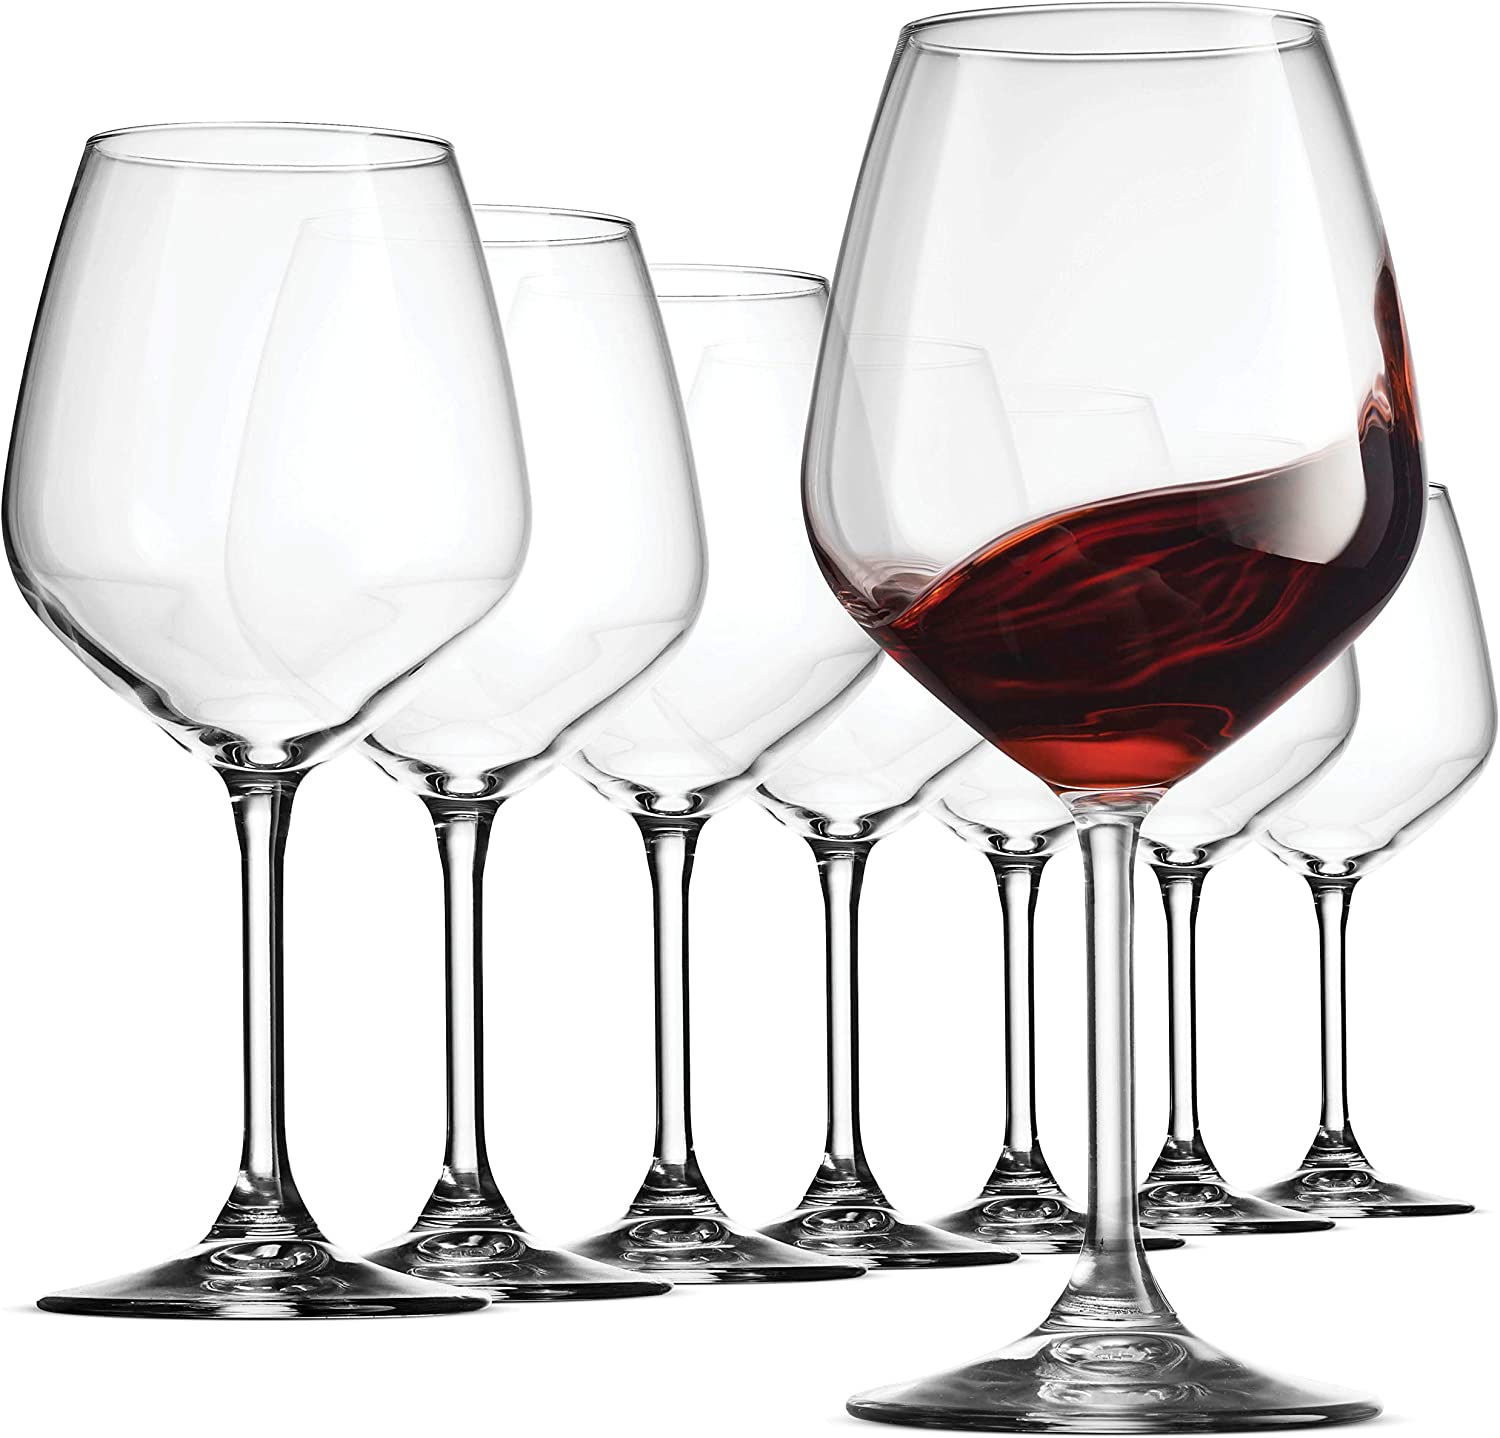 Bormioli Rocco Italian Red Wine Glasses 18 Ounce (Set of 8) Crystal Clear, Laser Cut Rim For Wine Tasting, Elegant Party Drinking Glassware, Restaurant Quality